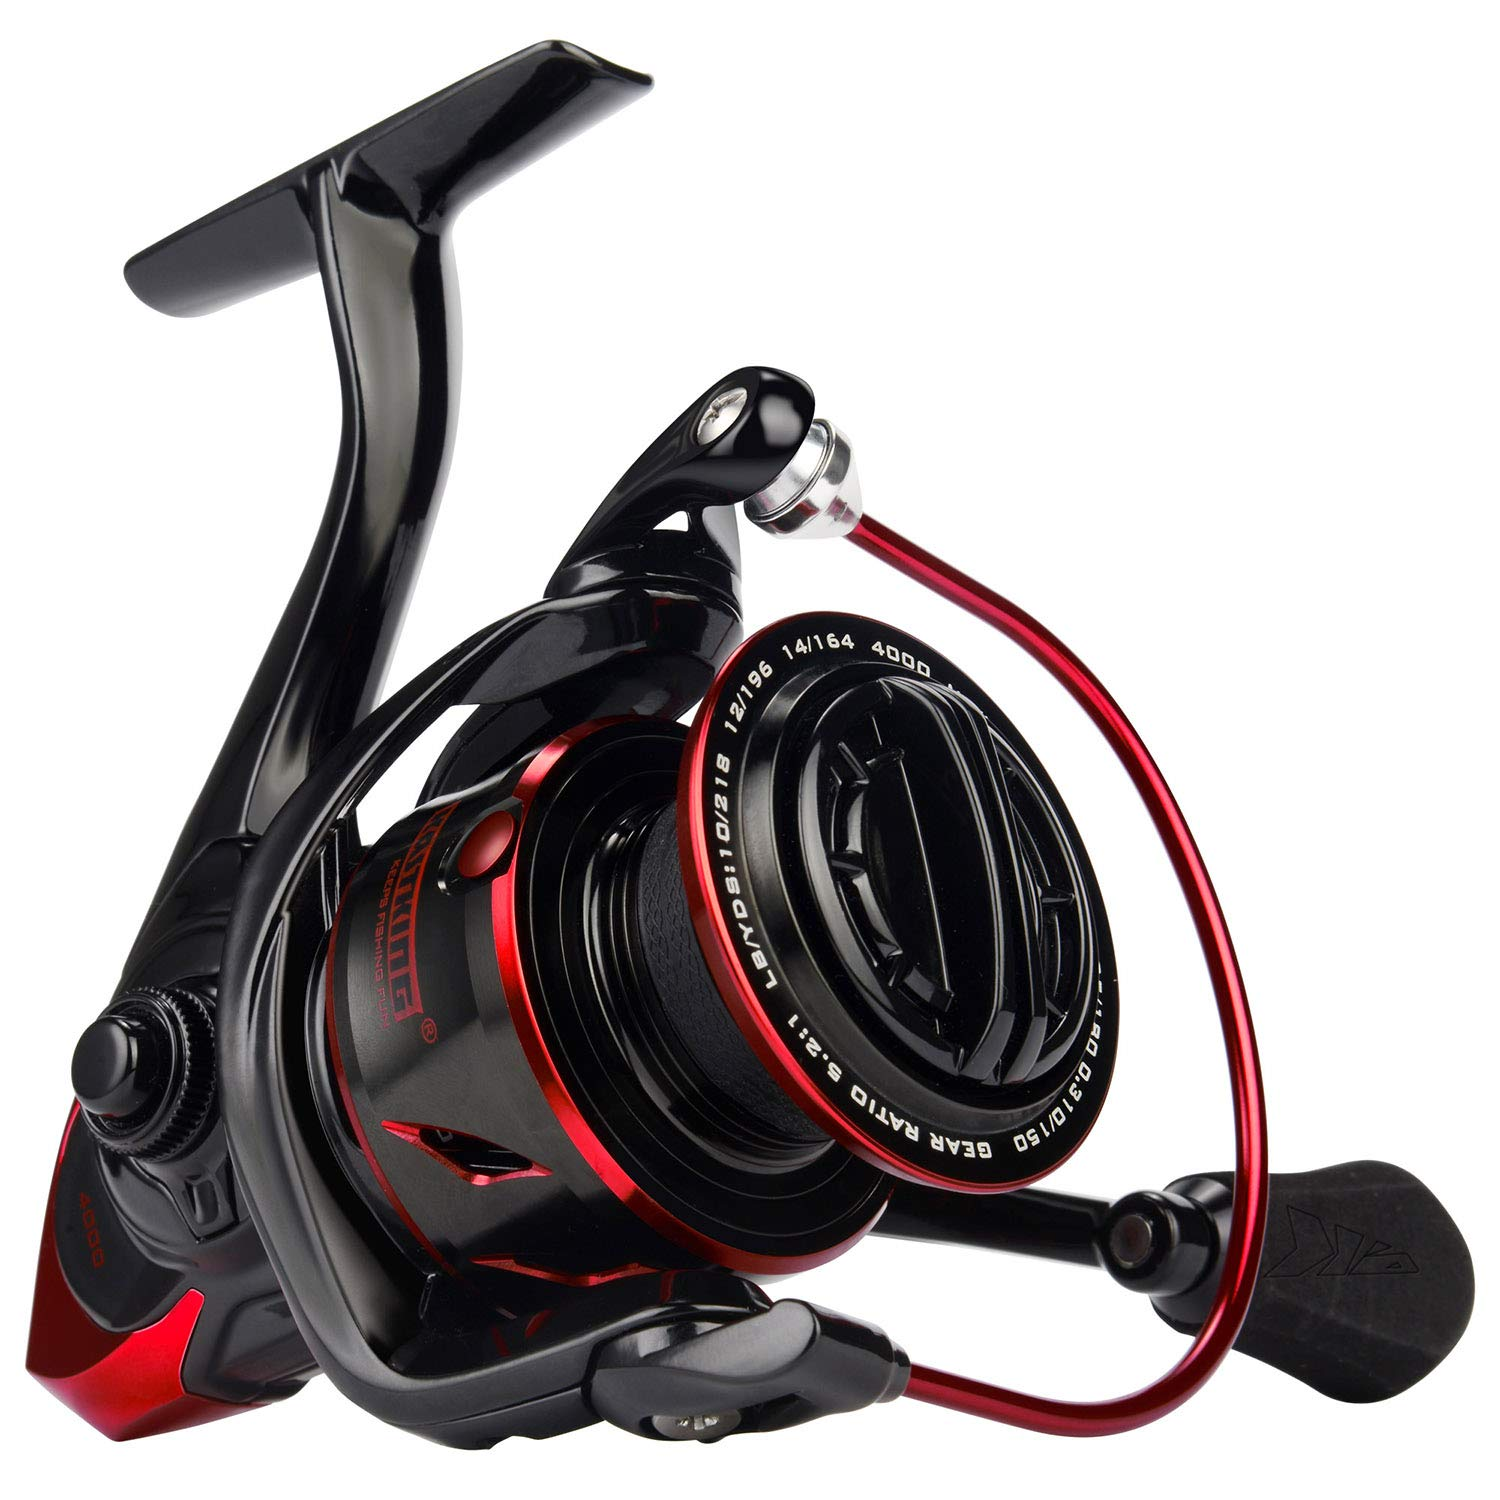 KastKing Sharky III Fishing Reel - New Spinning Reel - Carbon Fiber 39.5 LBs Max Drag - 10+1 Stainless BB for Saltwater or Freshwater - Oversize Shaft -...